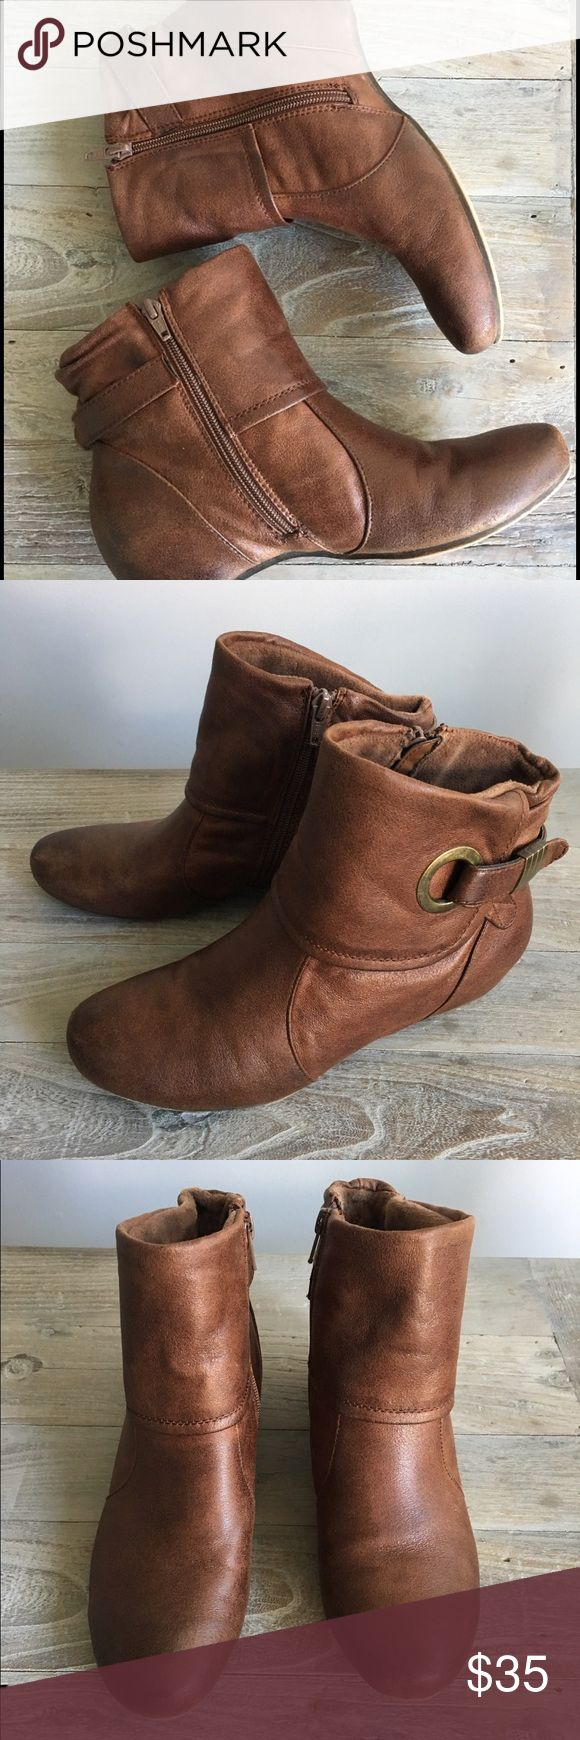 ✨ Like New Booties ✨ Like new. Mocha color. By Bearpaw. Worn 3 times. Only selling because I live in Hawaii but needed them during a trip in colder weather. Size 8.5 fits true to size. No trades. Will consider offers! BearPaw Shoes Ankle Boots & Booties